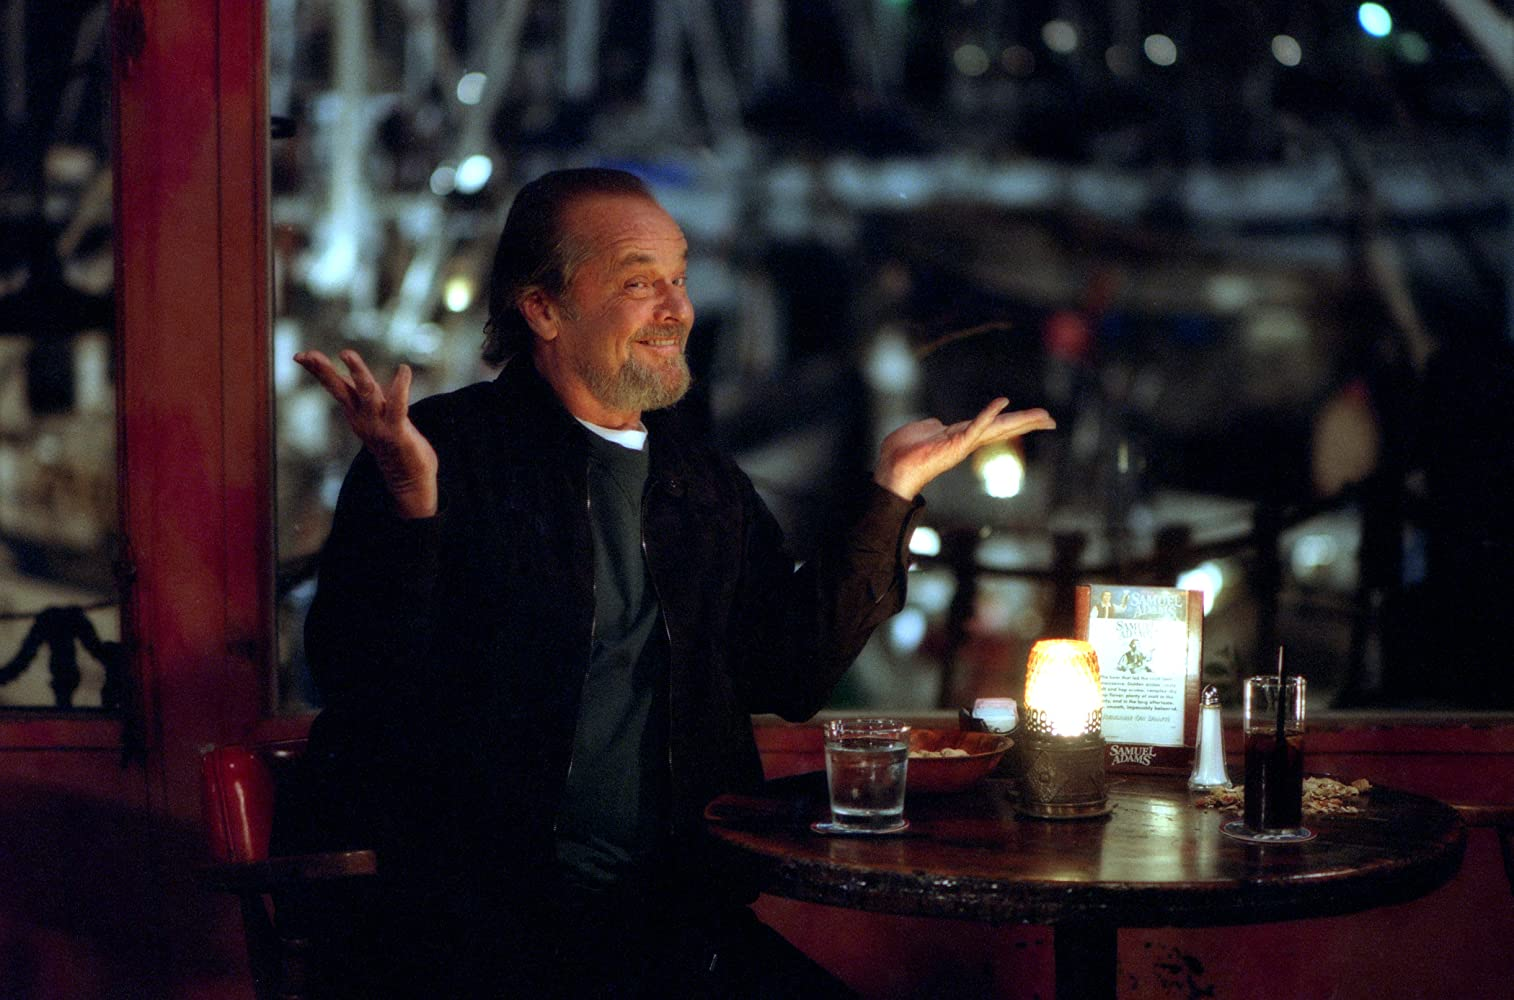 Jack Nicholson in Anger Management (2003)